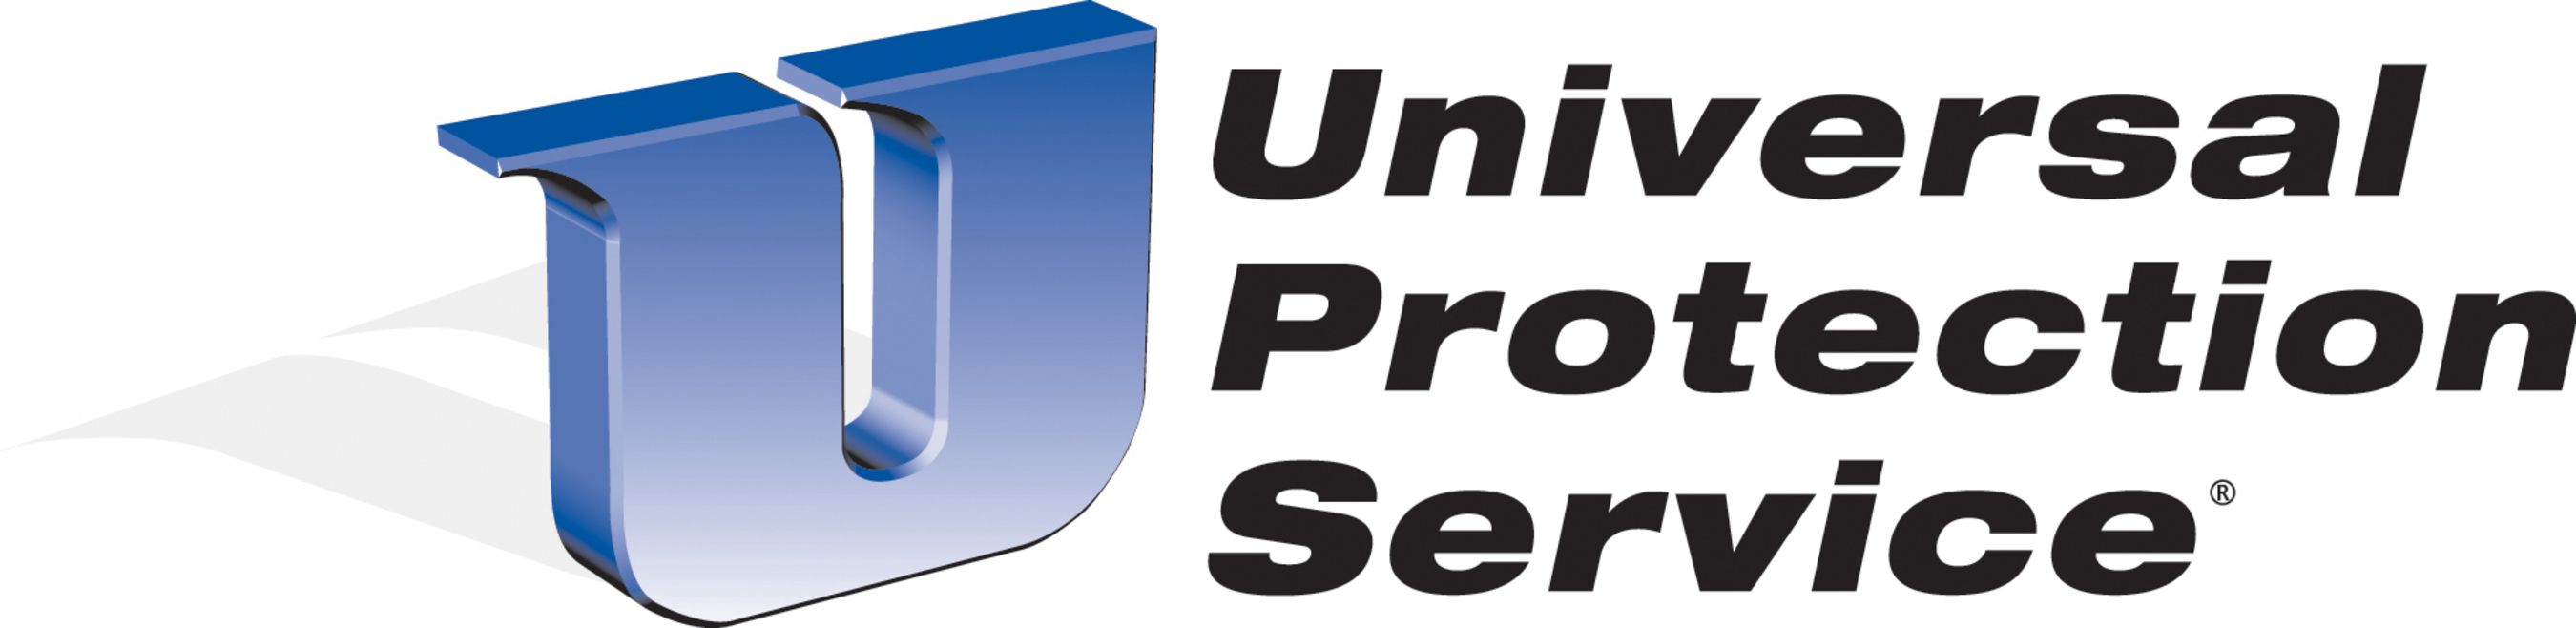 Northwest Protective Service Now Offers Security as Part of the Universal Family